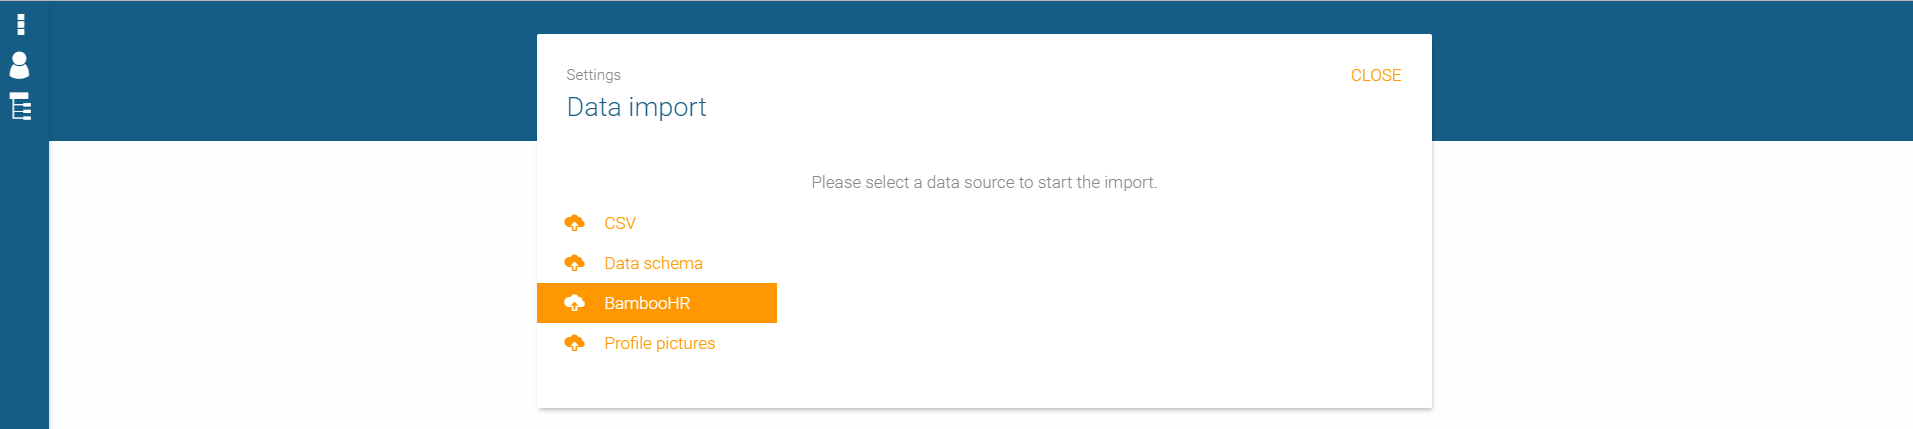 Data import from BambooHR